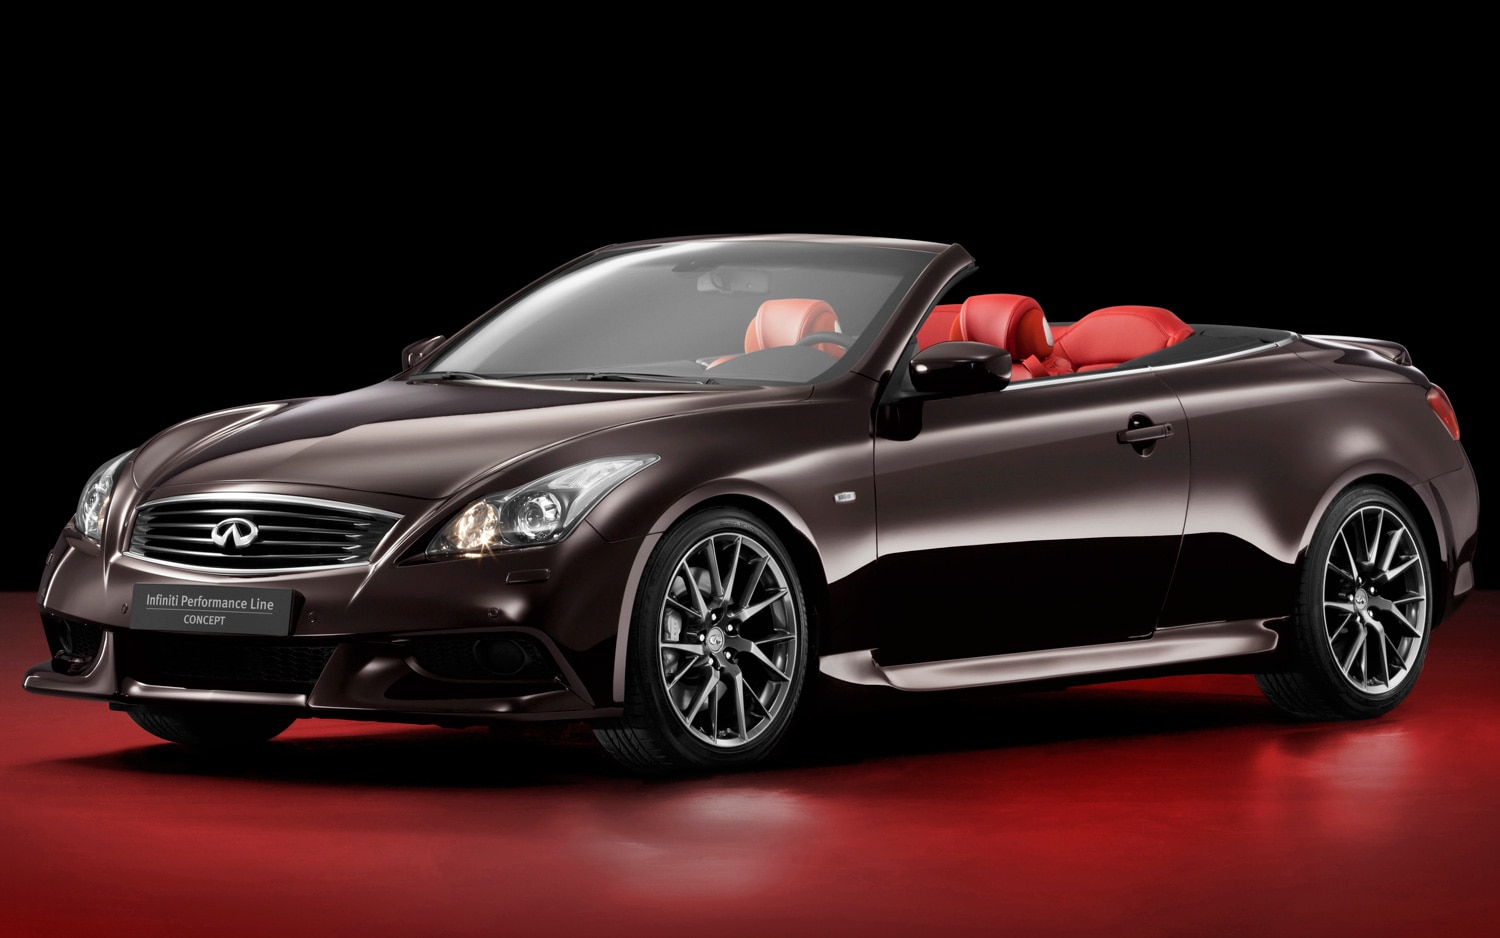 2013 Infiniti G37 IPL Convertible Concept Front Three Quarters View1